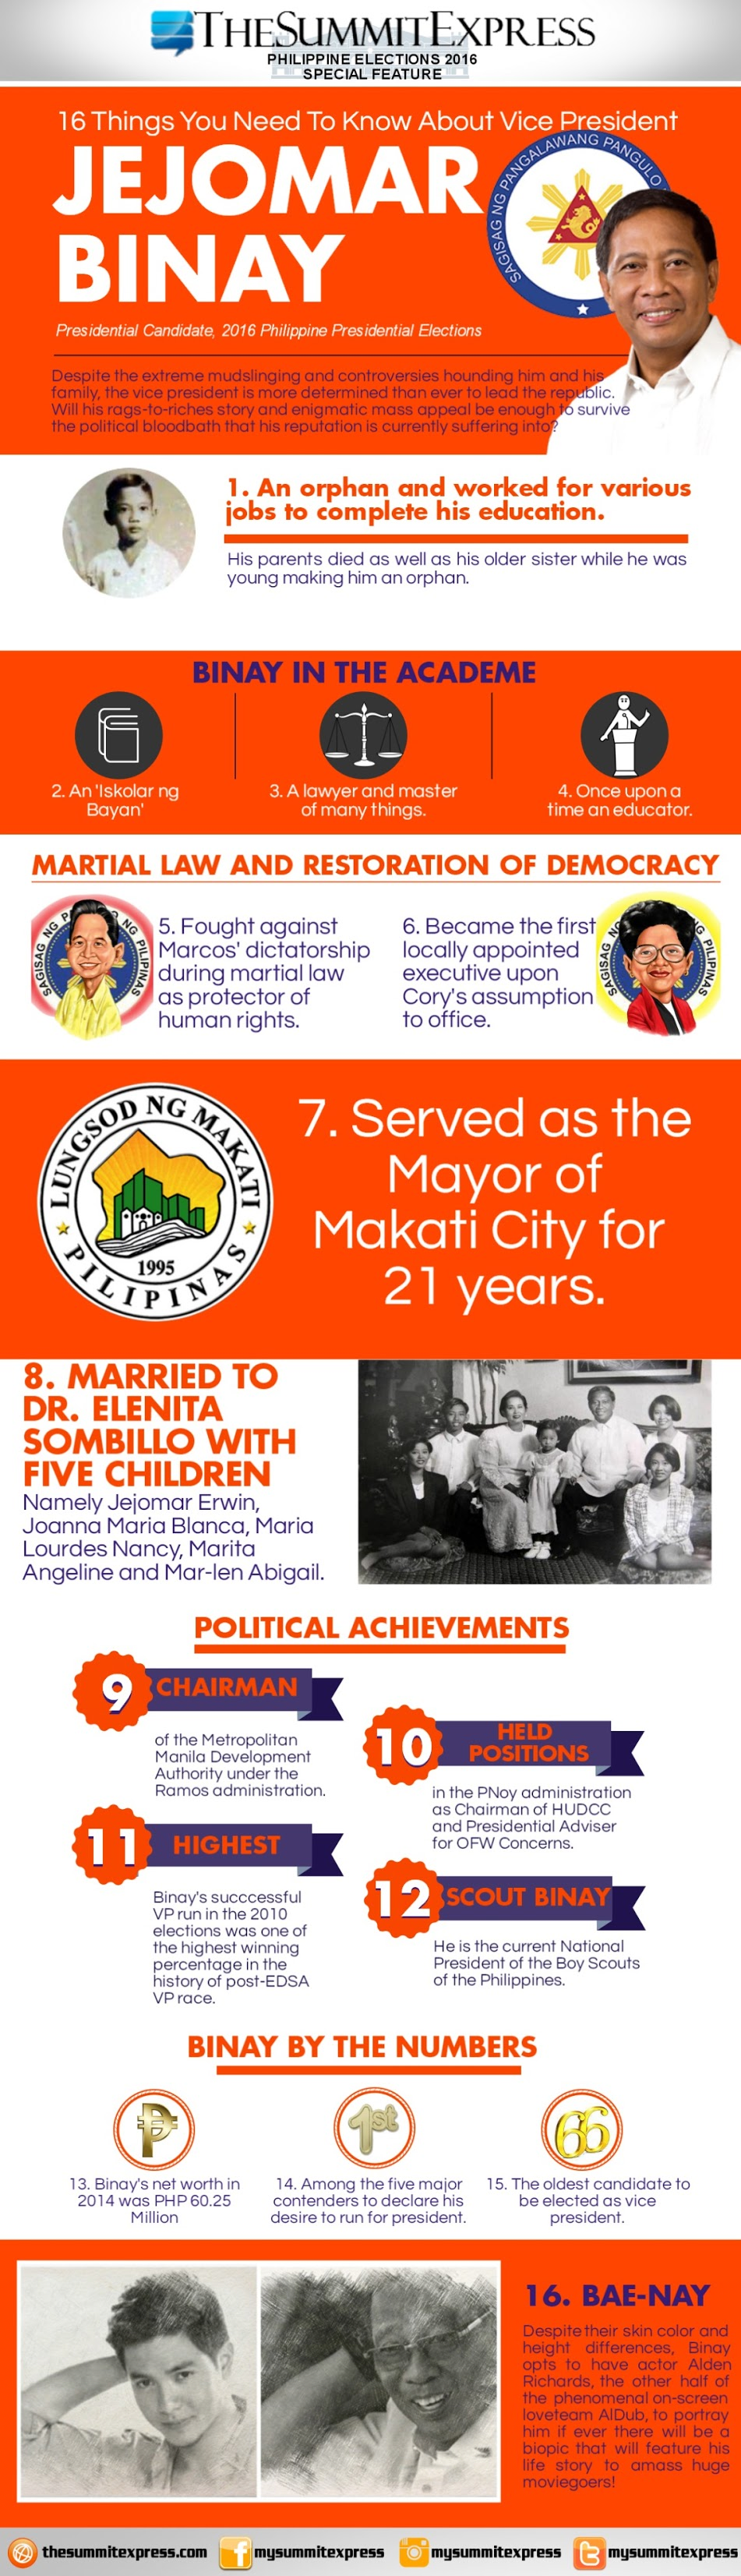 16 Things You Need To Know About Vice President Jejomar Binay